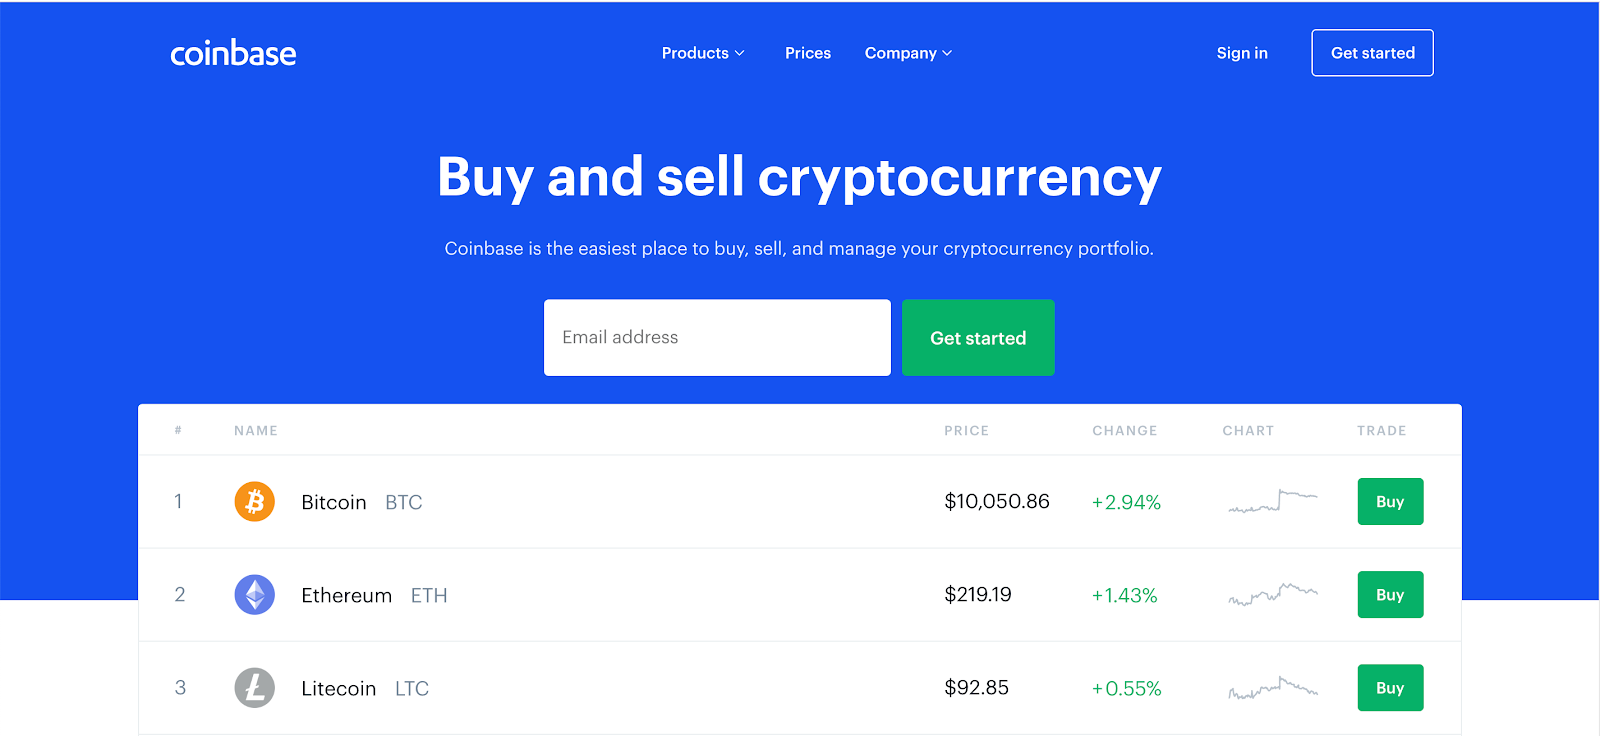 Coinbase cryptocurrency exchange homepage.